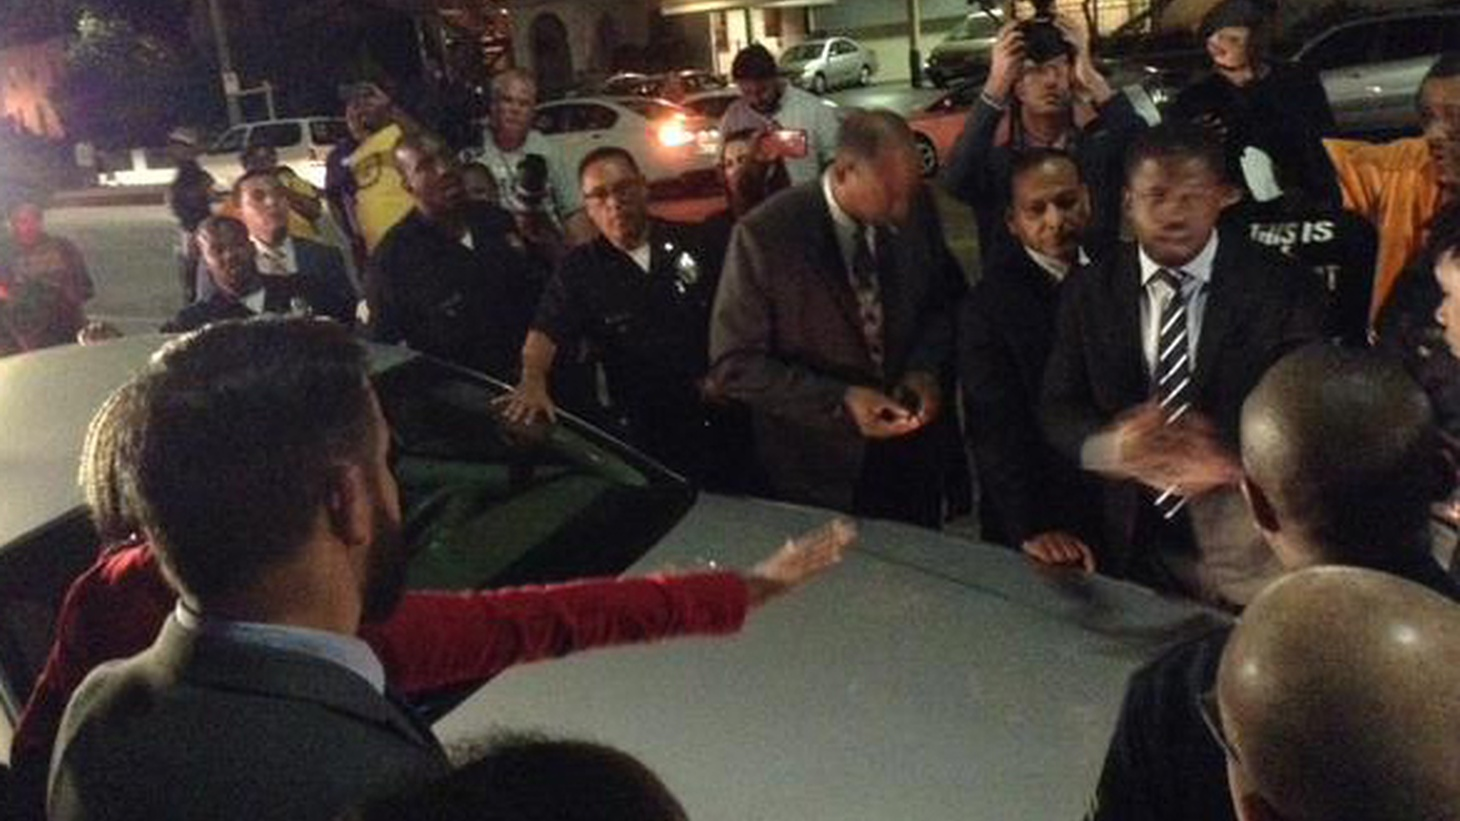 Black Lives Matter protesters disrupted a community meeting held by Mayor Garcetti last night in South LA, closing the meeting down early.